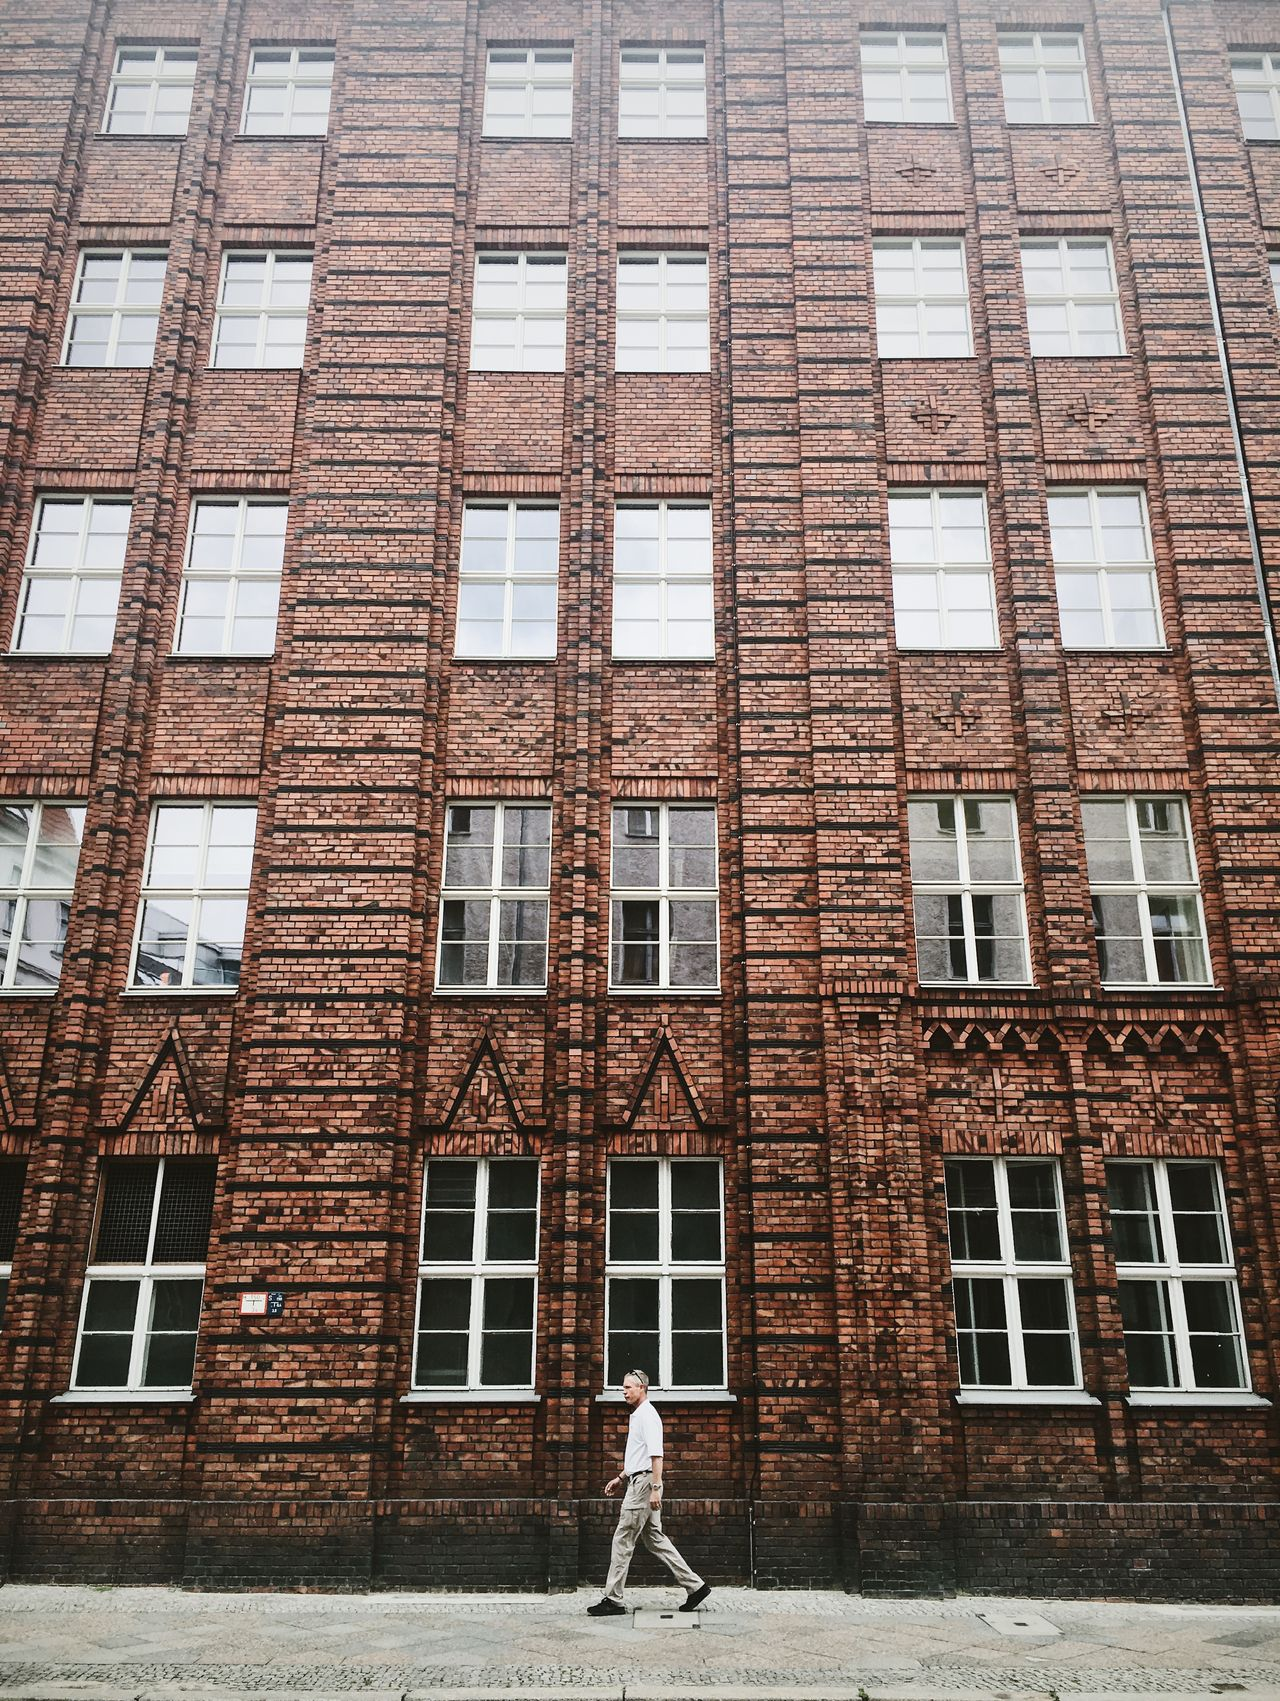 Architecture Berlin Brick Wall City Man Passerby Brick Building Building Exterior Built Structure Daily Life Day Old Buildings One Person People Red Wall Streetphotography Walking Windows